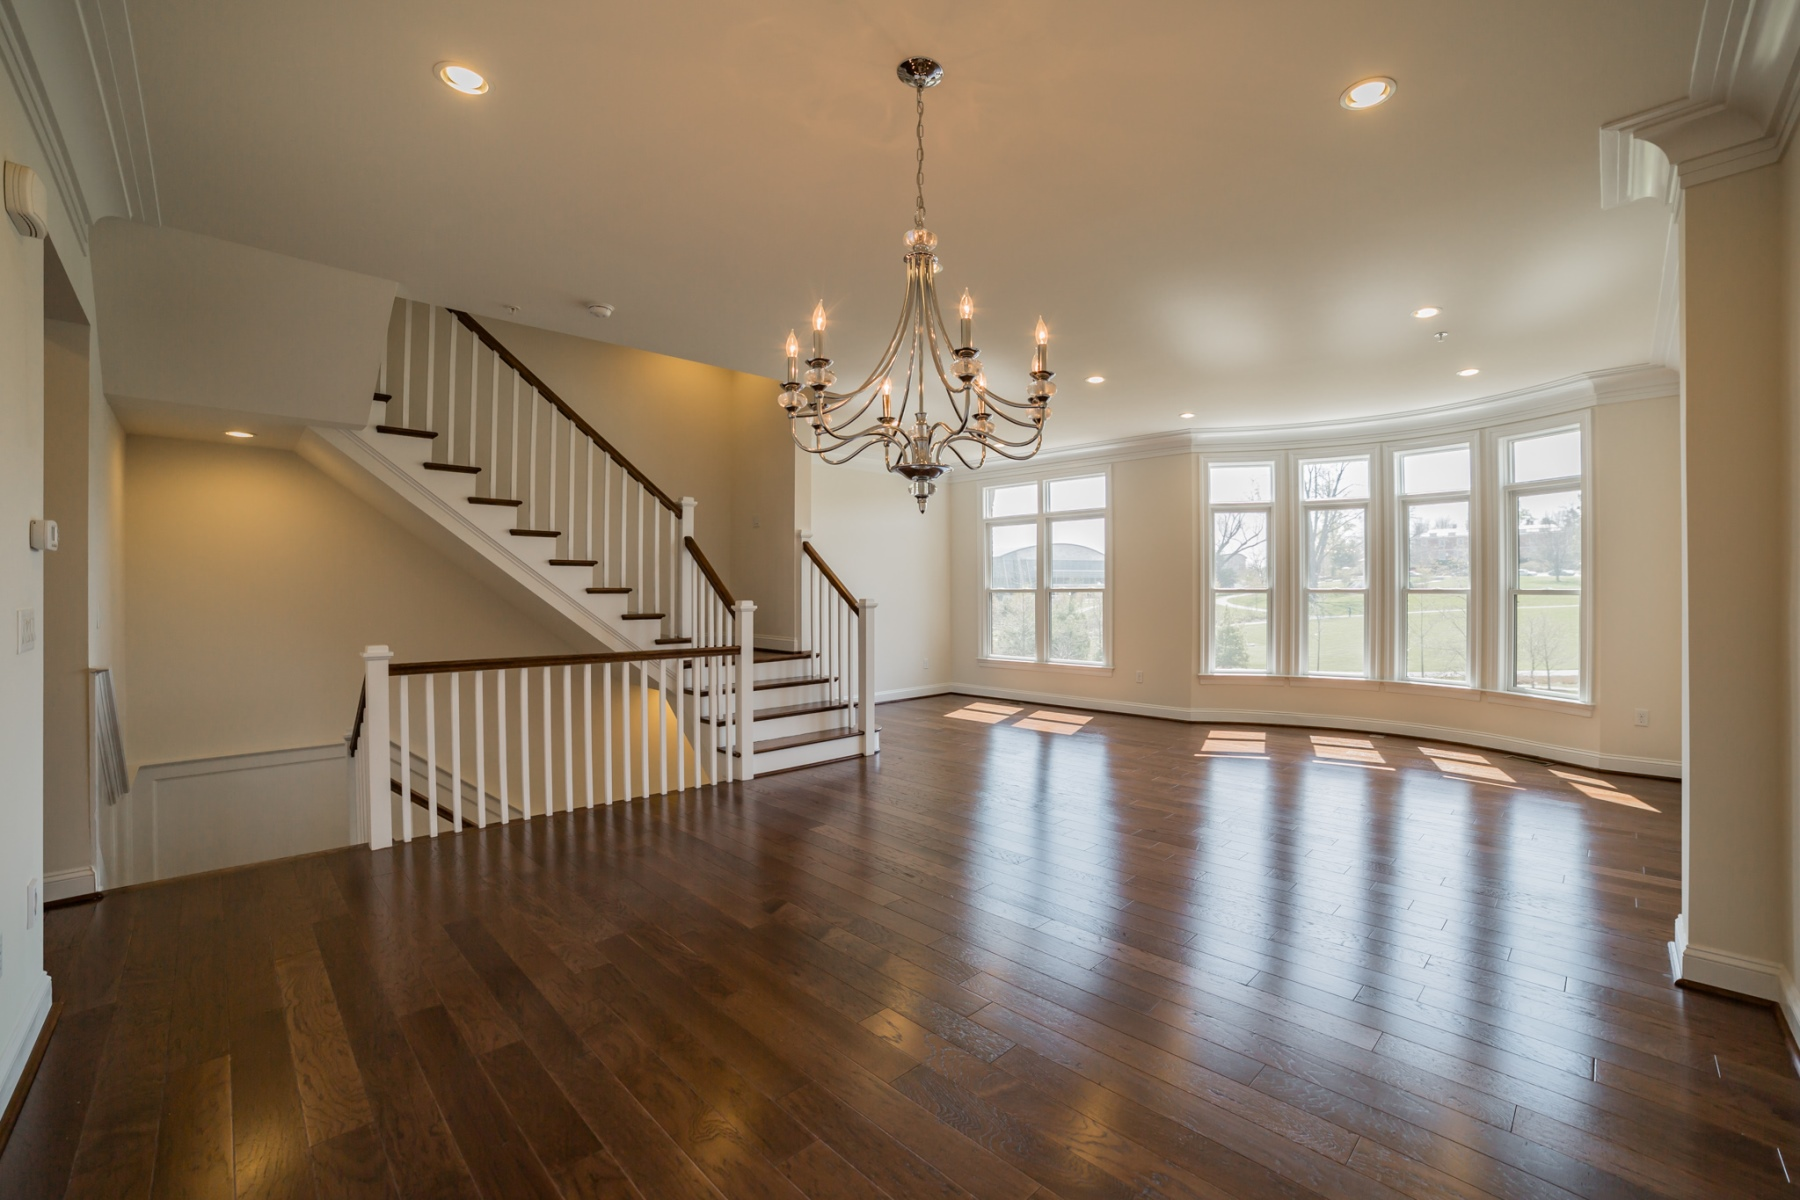 Additional photo for property listing at 10777 Symphony Park Drive, North Bethesda  North Bethesda, Maryland 20852 Stati Uniti